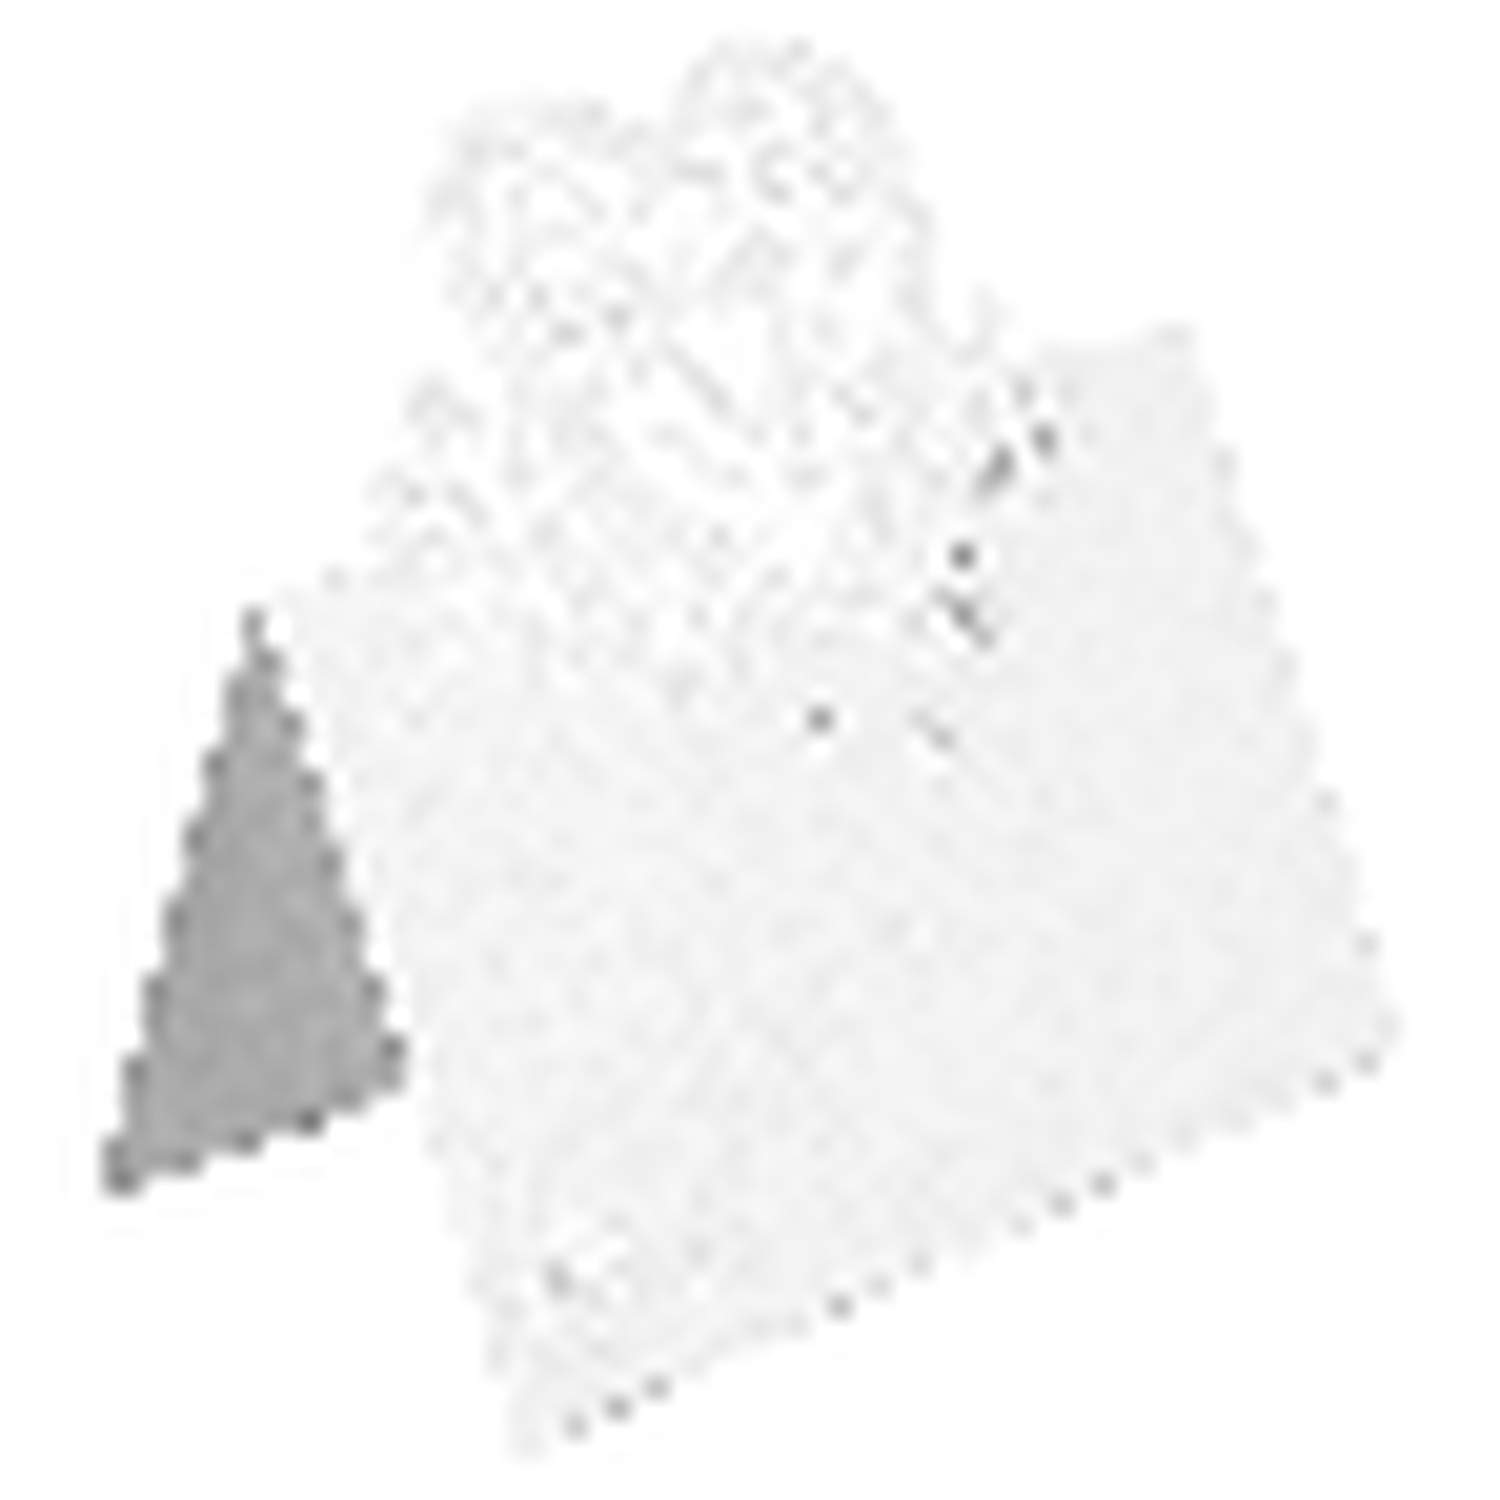 50Pcs/Lot Love Heart Laser Cut Wedding Party Table Name Place Cards Favor Decor Wedding,White,China